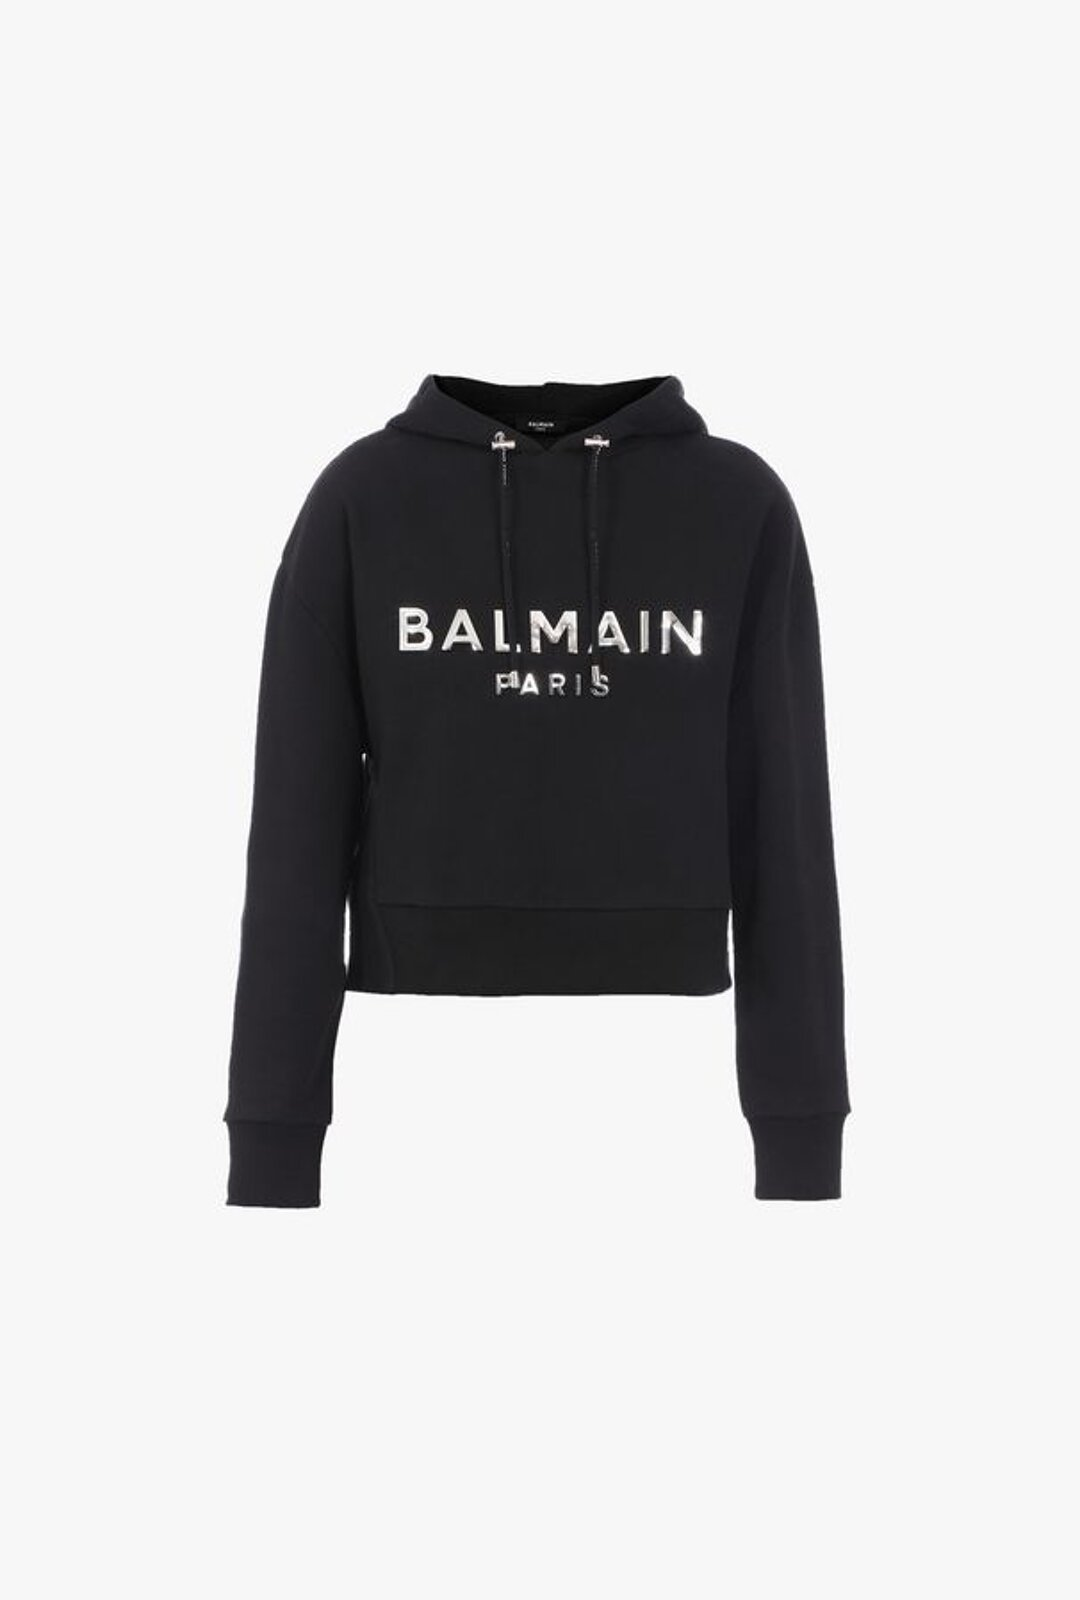 Short Sweatshirt In Black Cotton With Hood And Silver Balmain Logo - Balmain